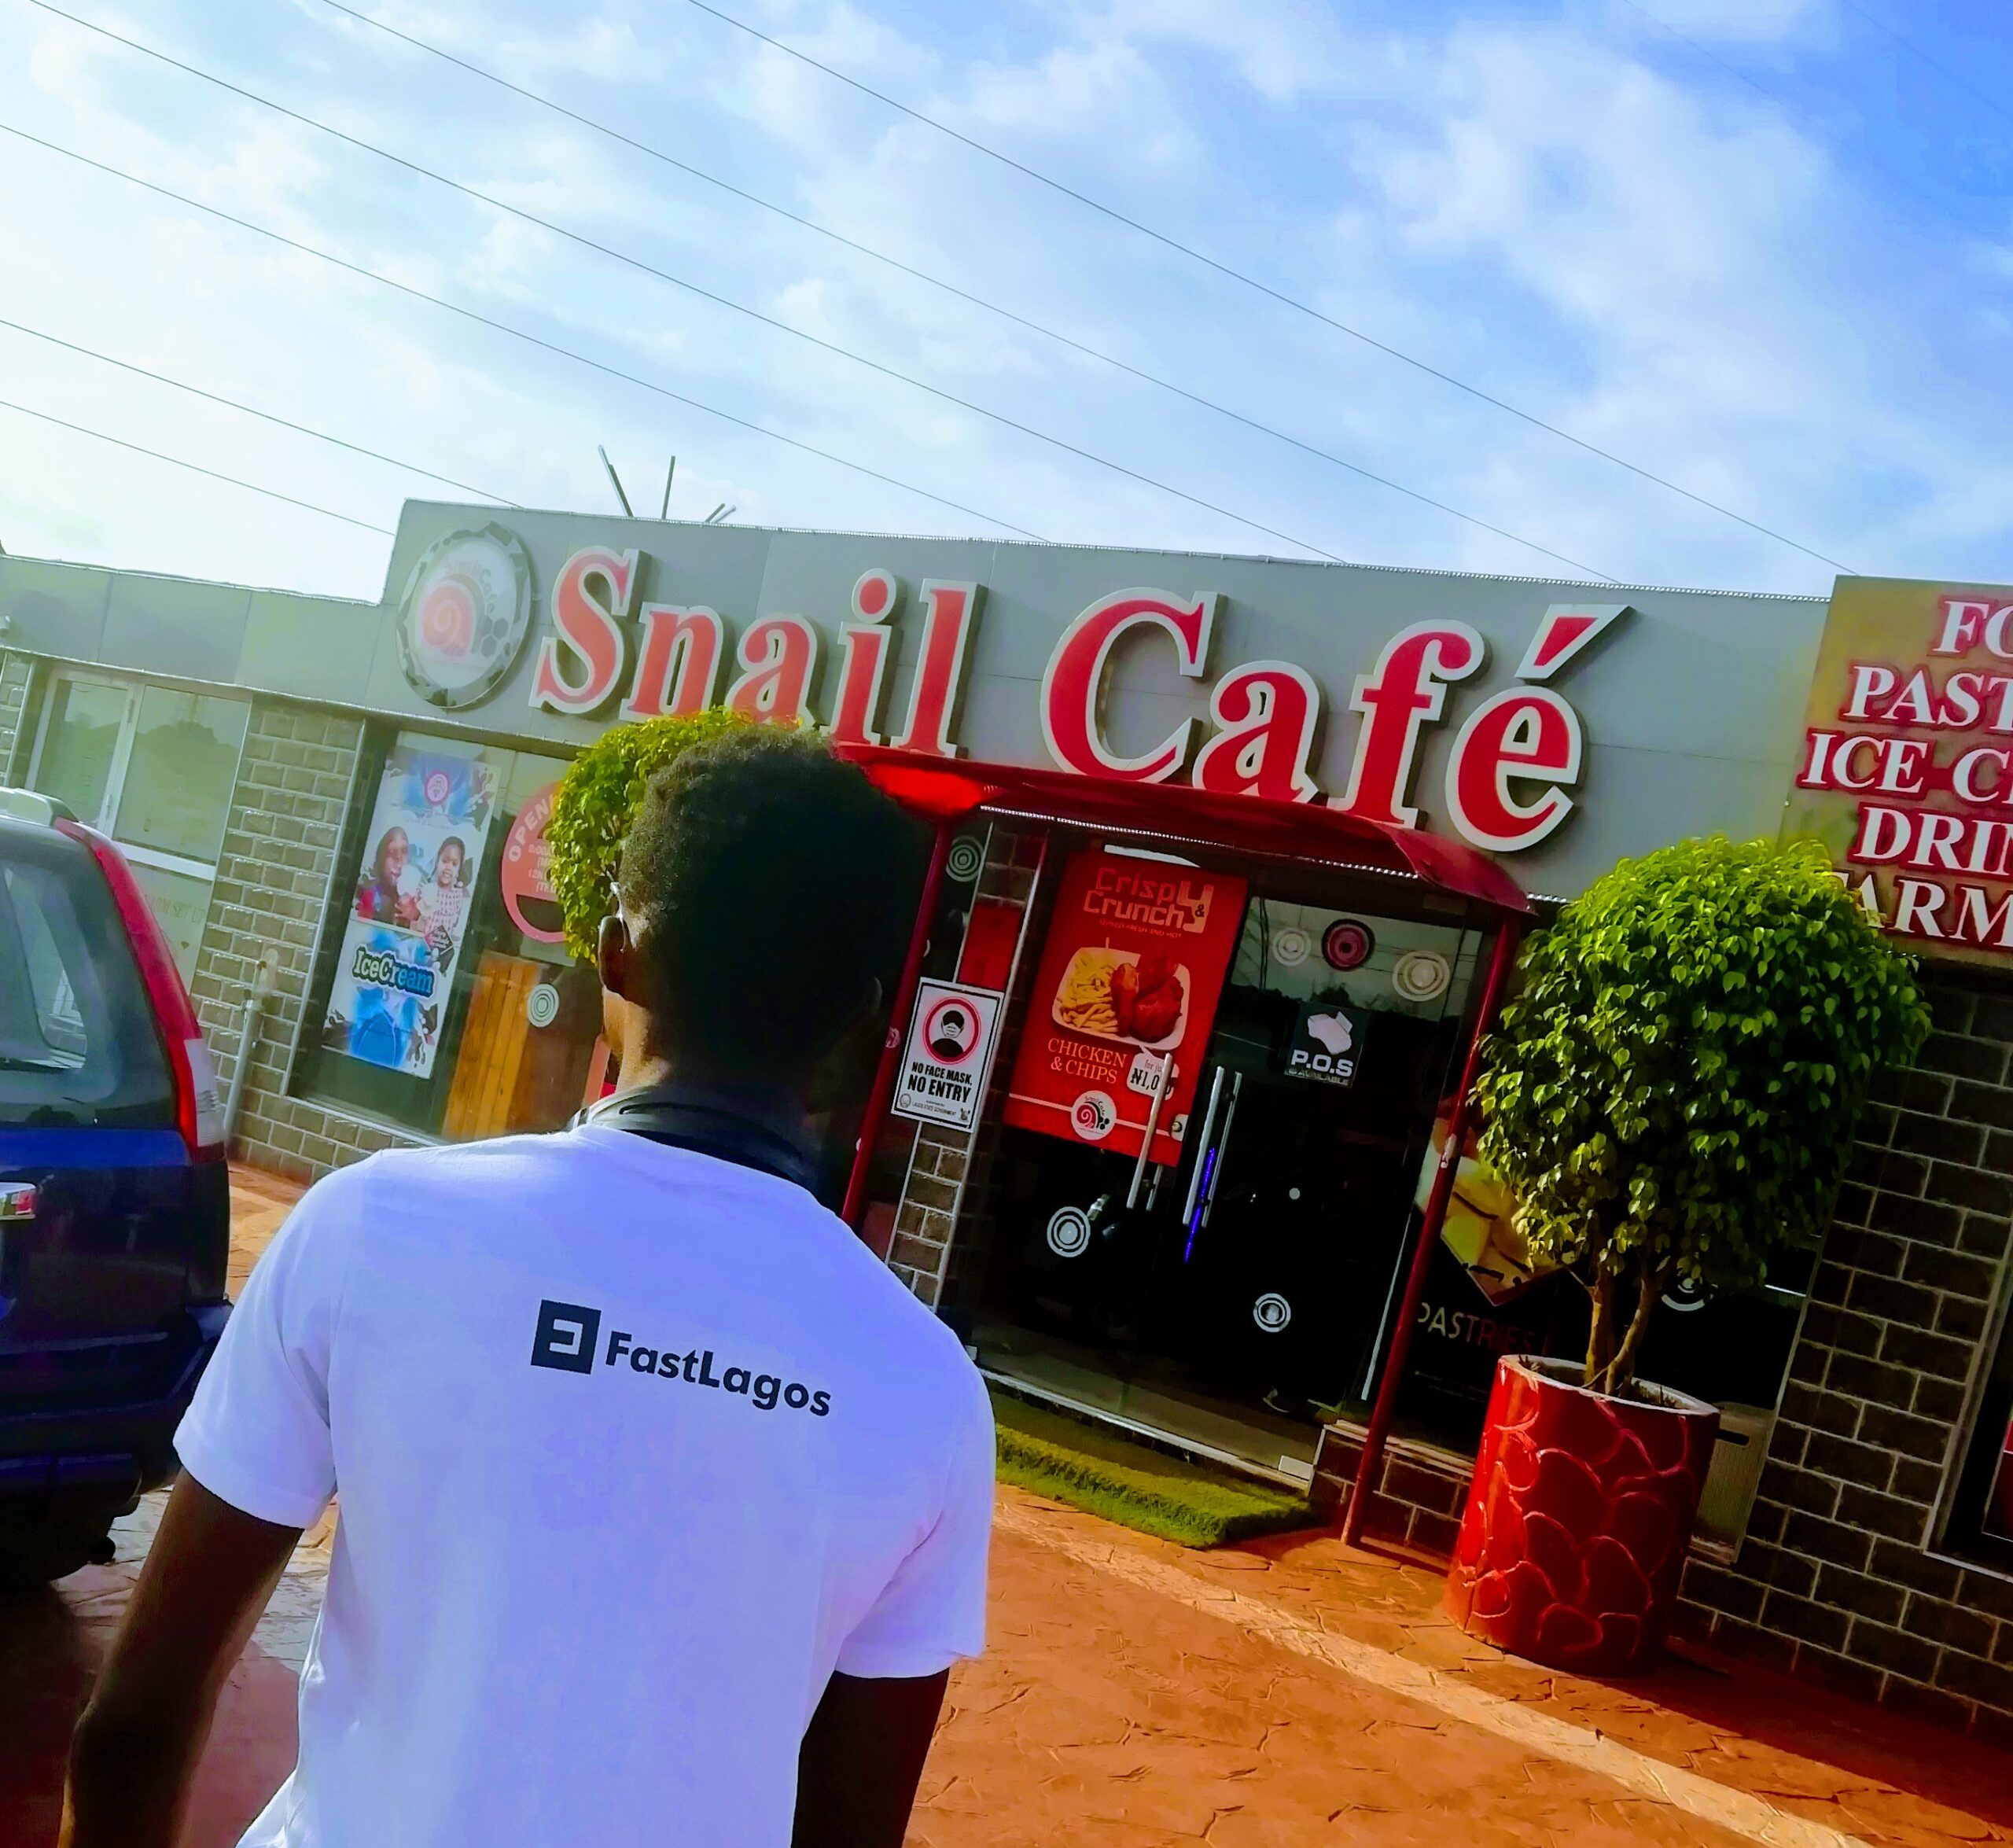 snail cafe restaurant